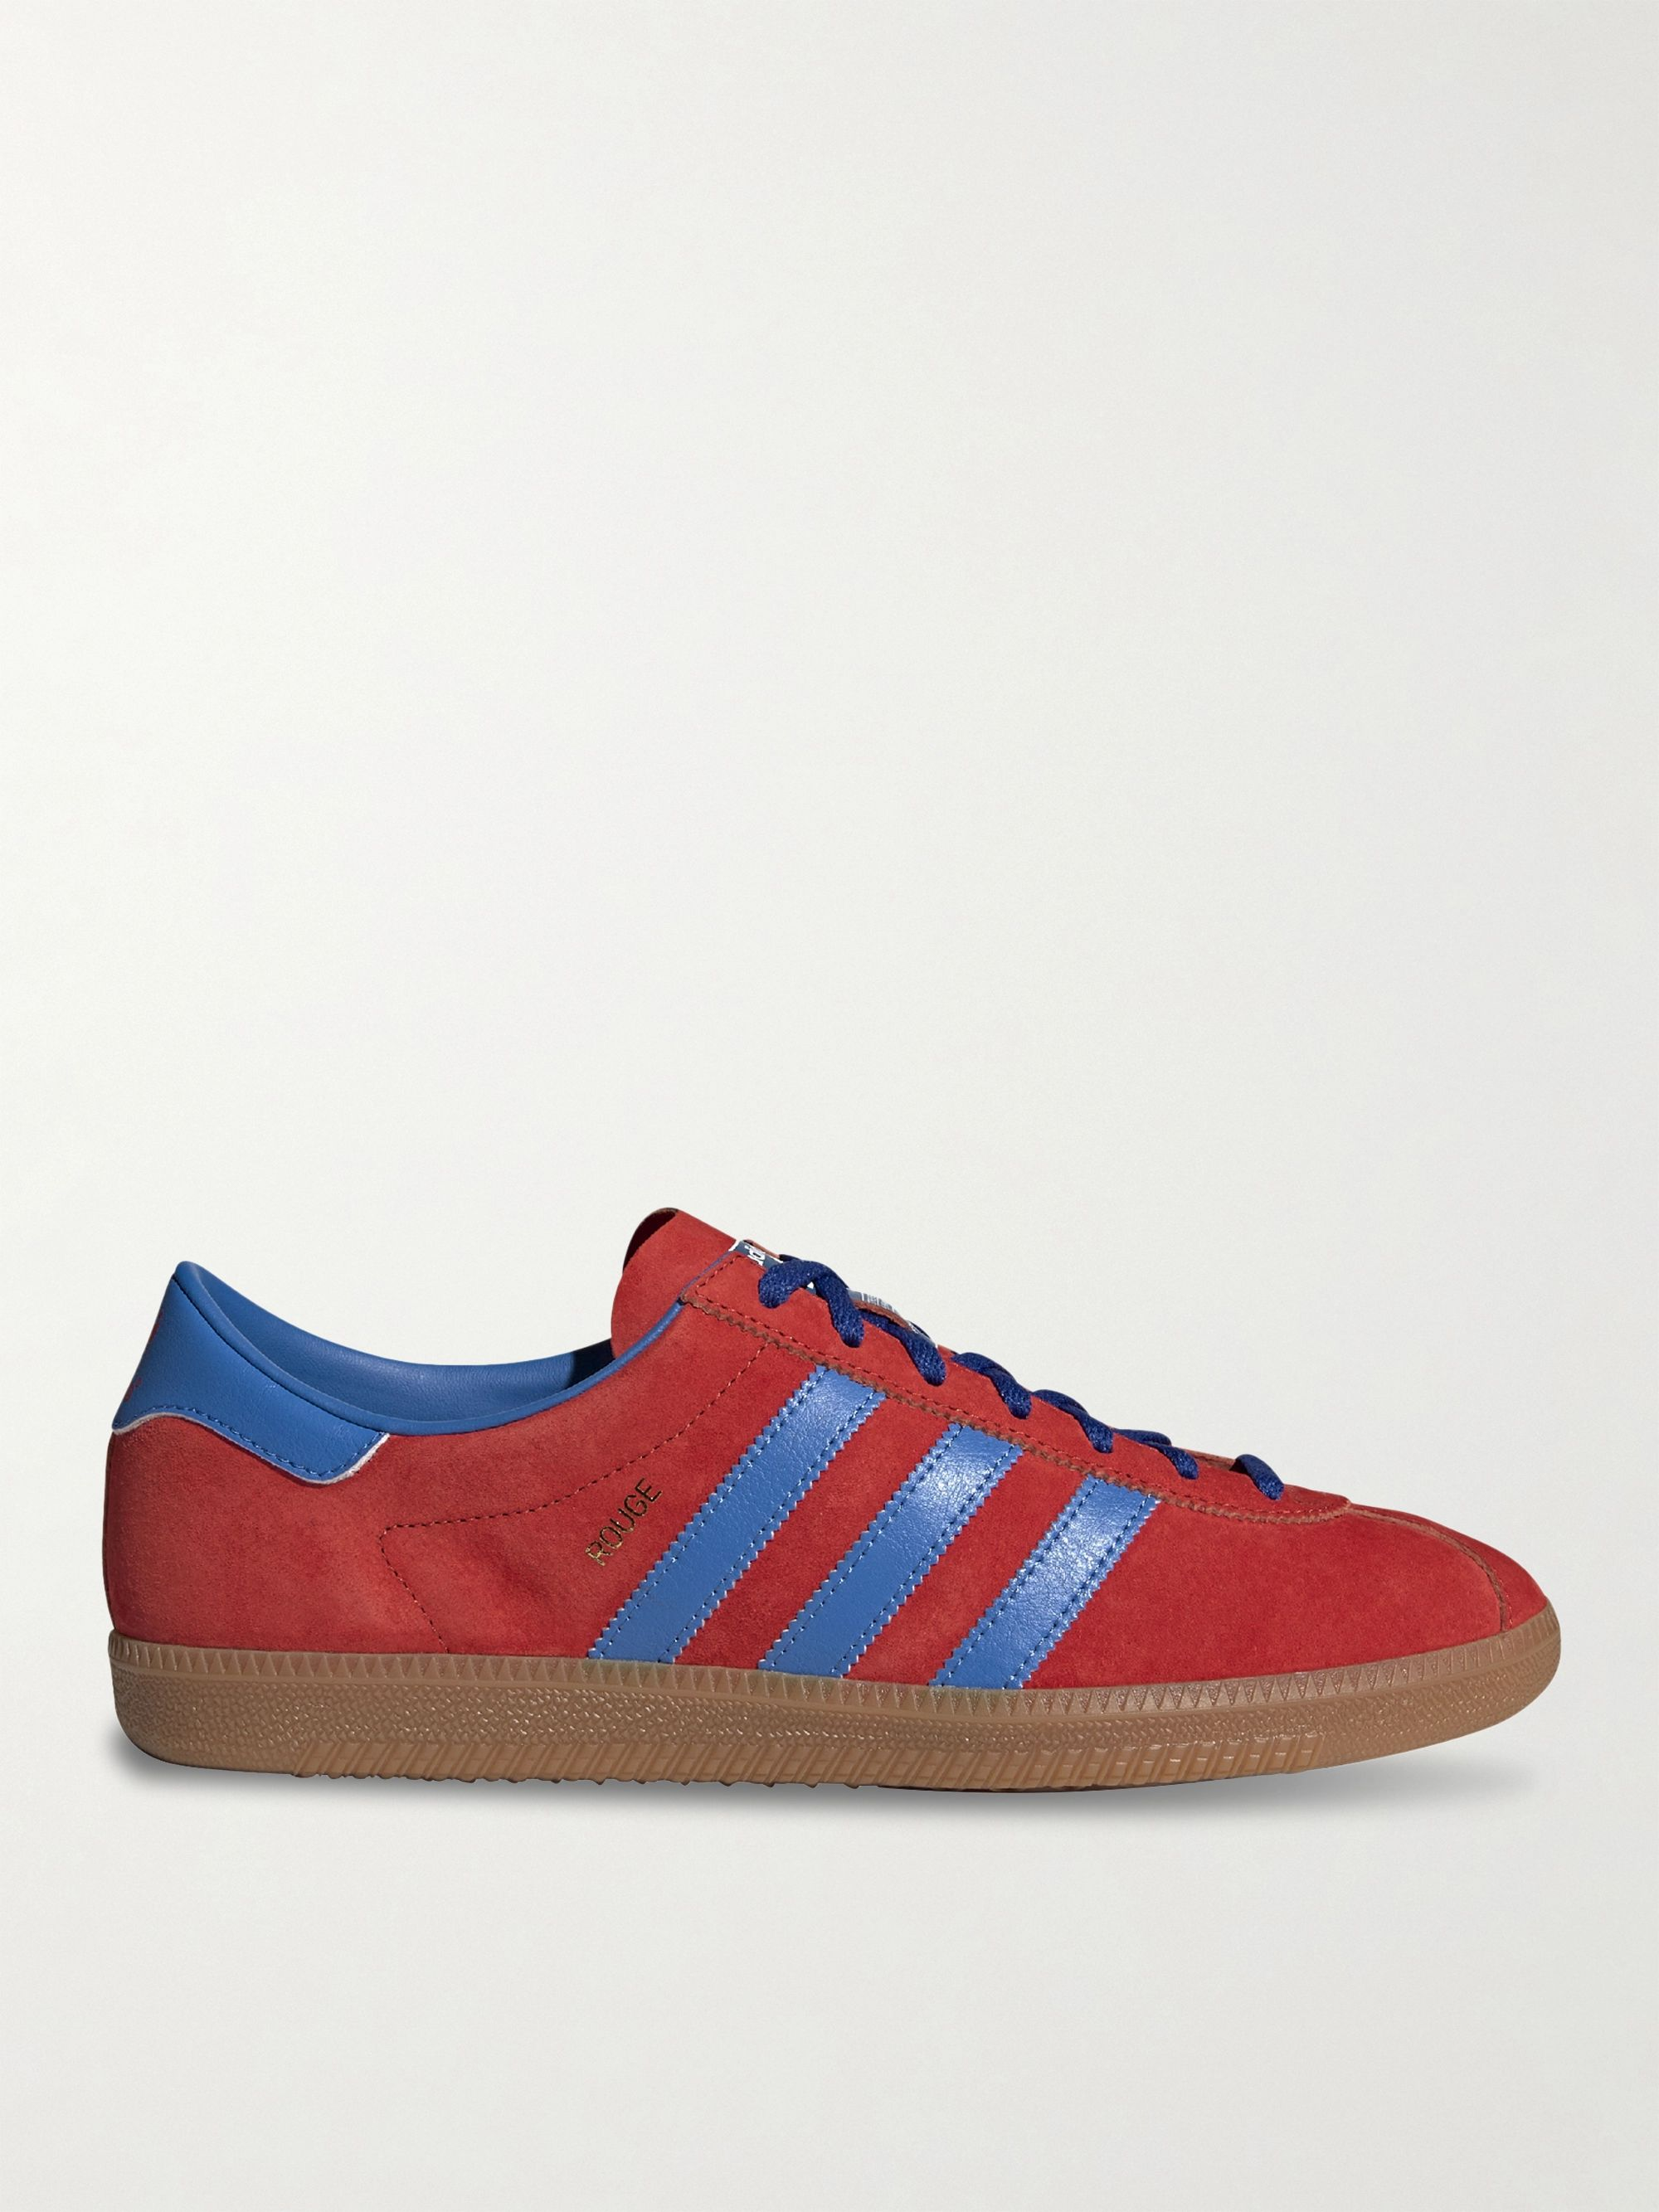 Rouge Nubuck and Leather Sneakers